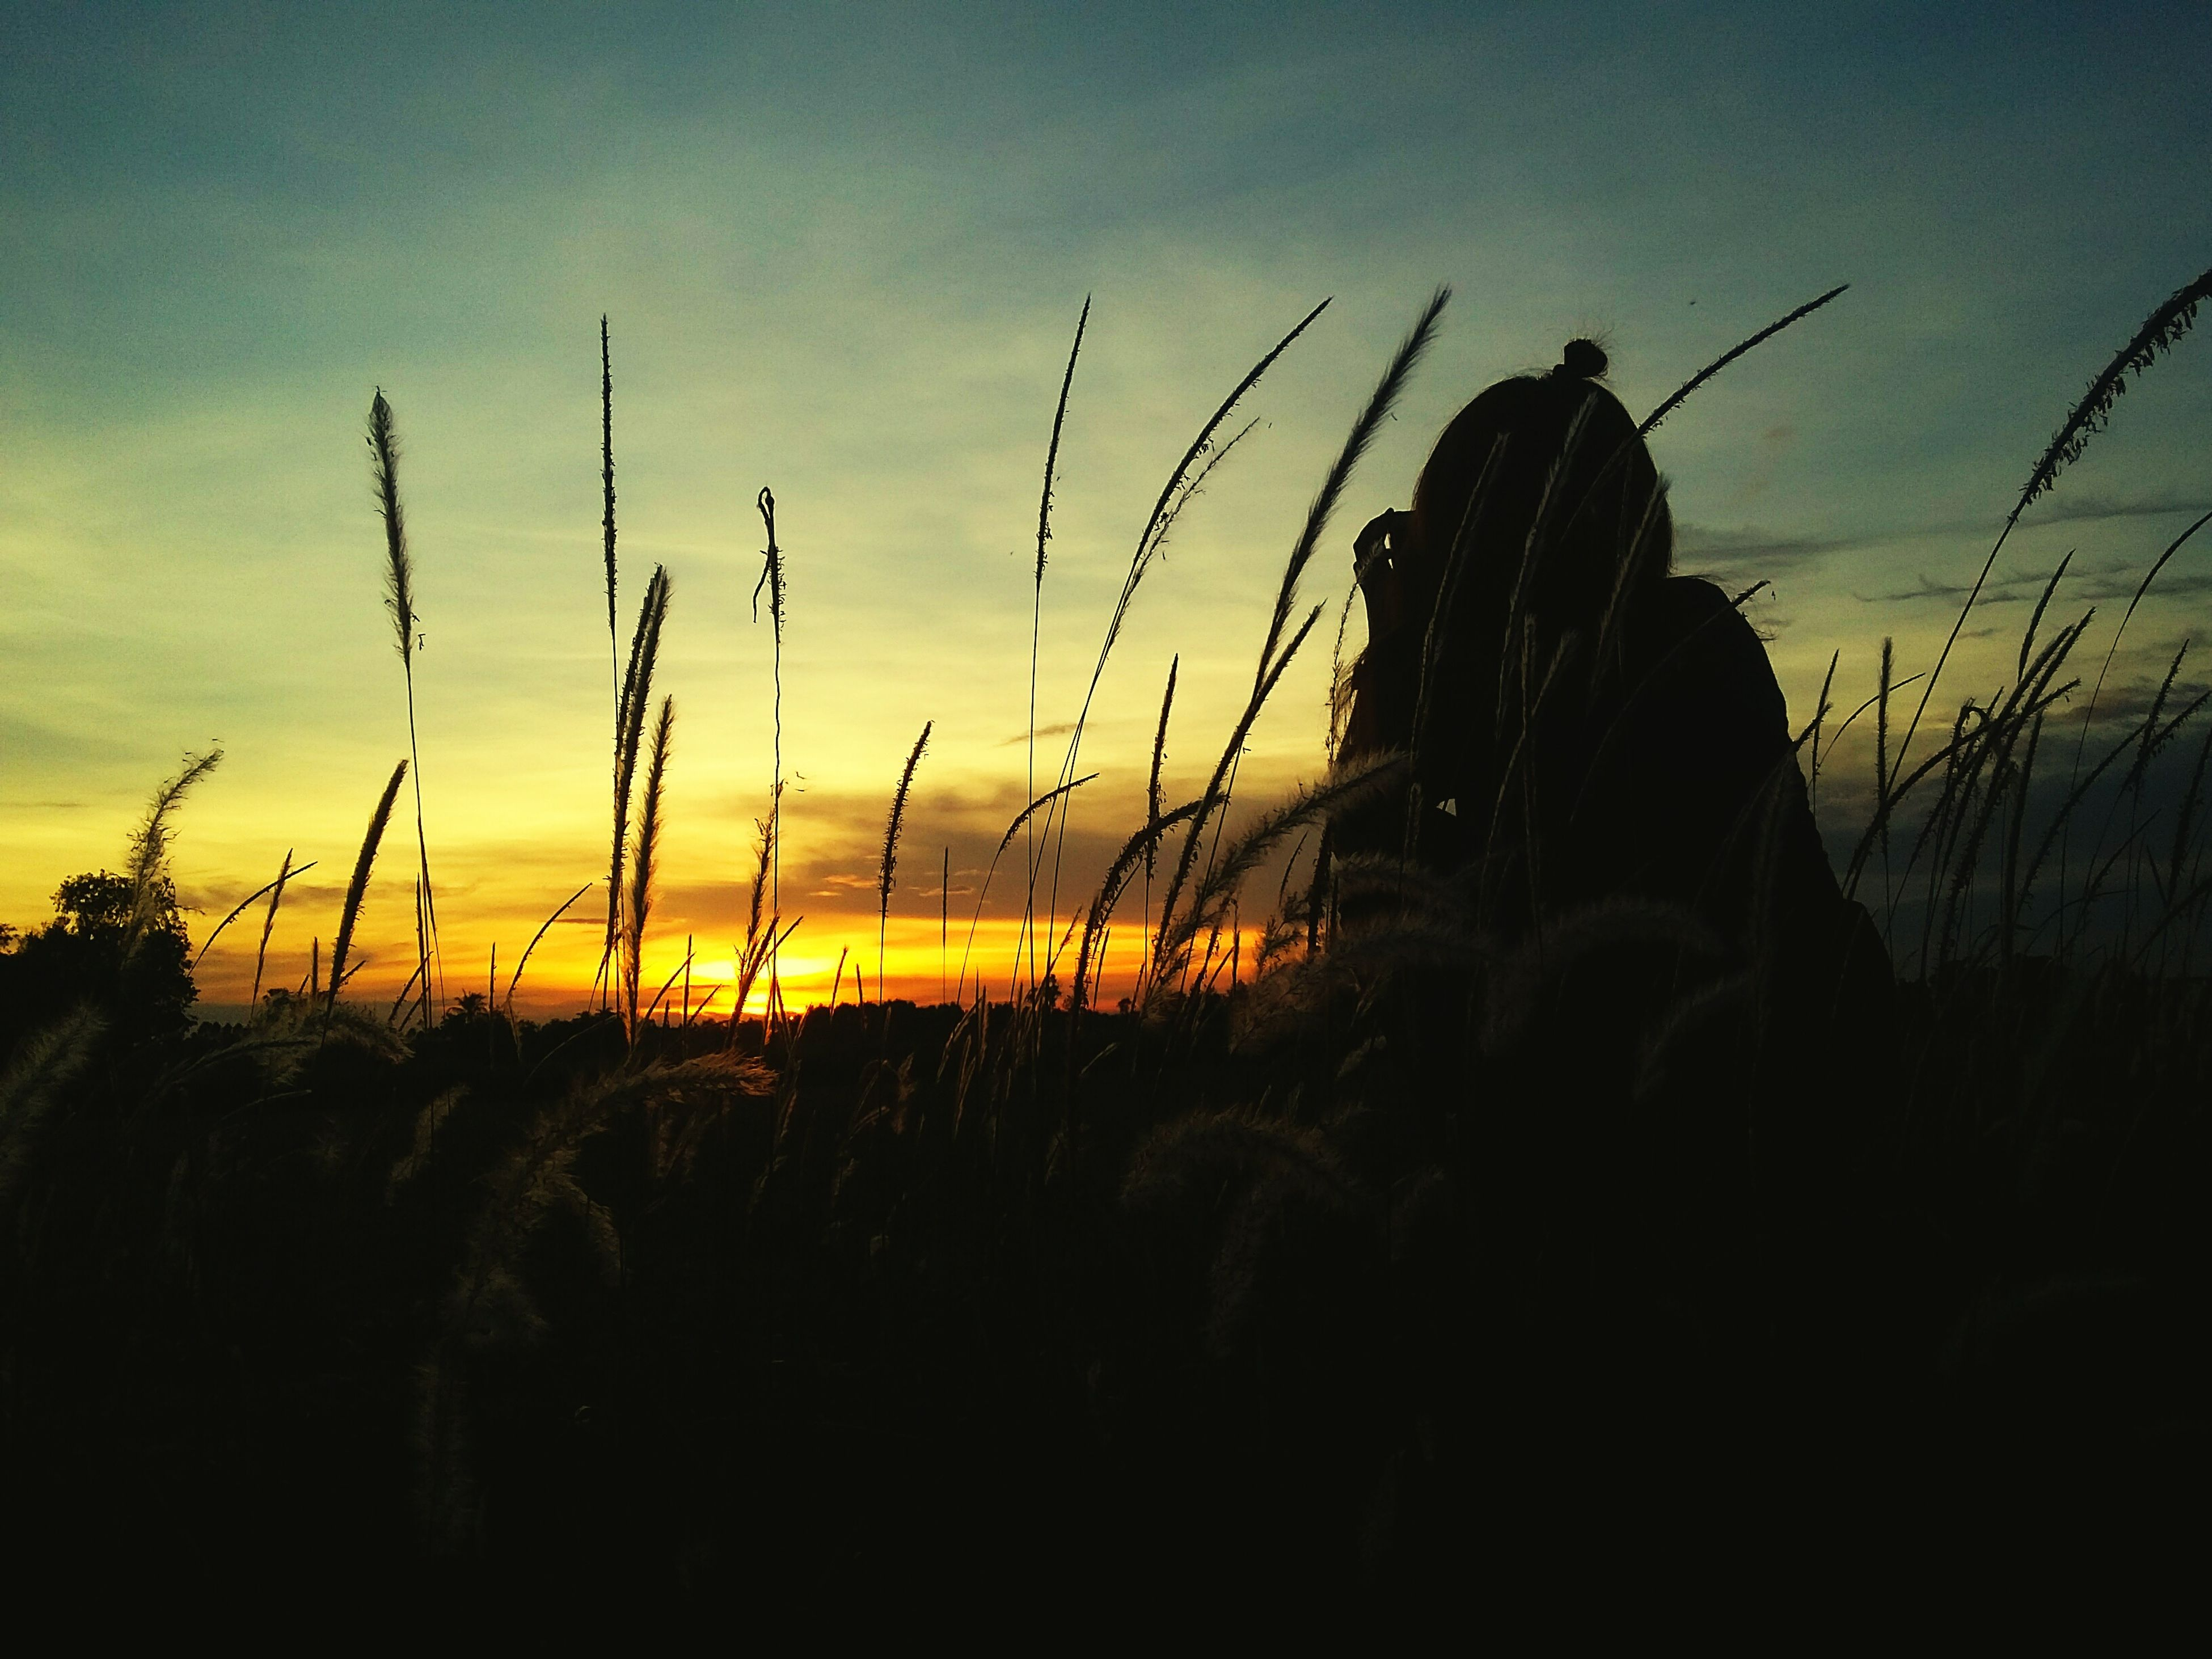 sunset, silhouette, sky, plant, field, nature, beauty in nature, tranquility, tranquil scene, scenics, growth, landscape, sun, orange color, outline, outdoors, idyllic, sunlight, dusk, rural scene